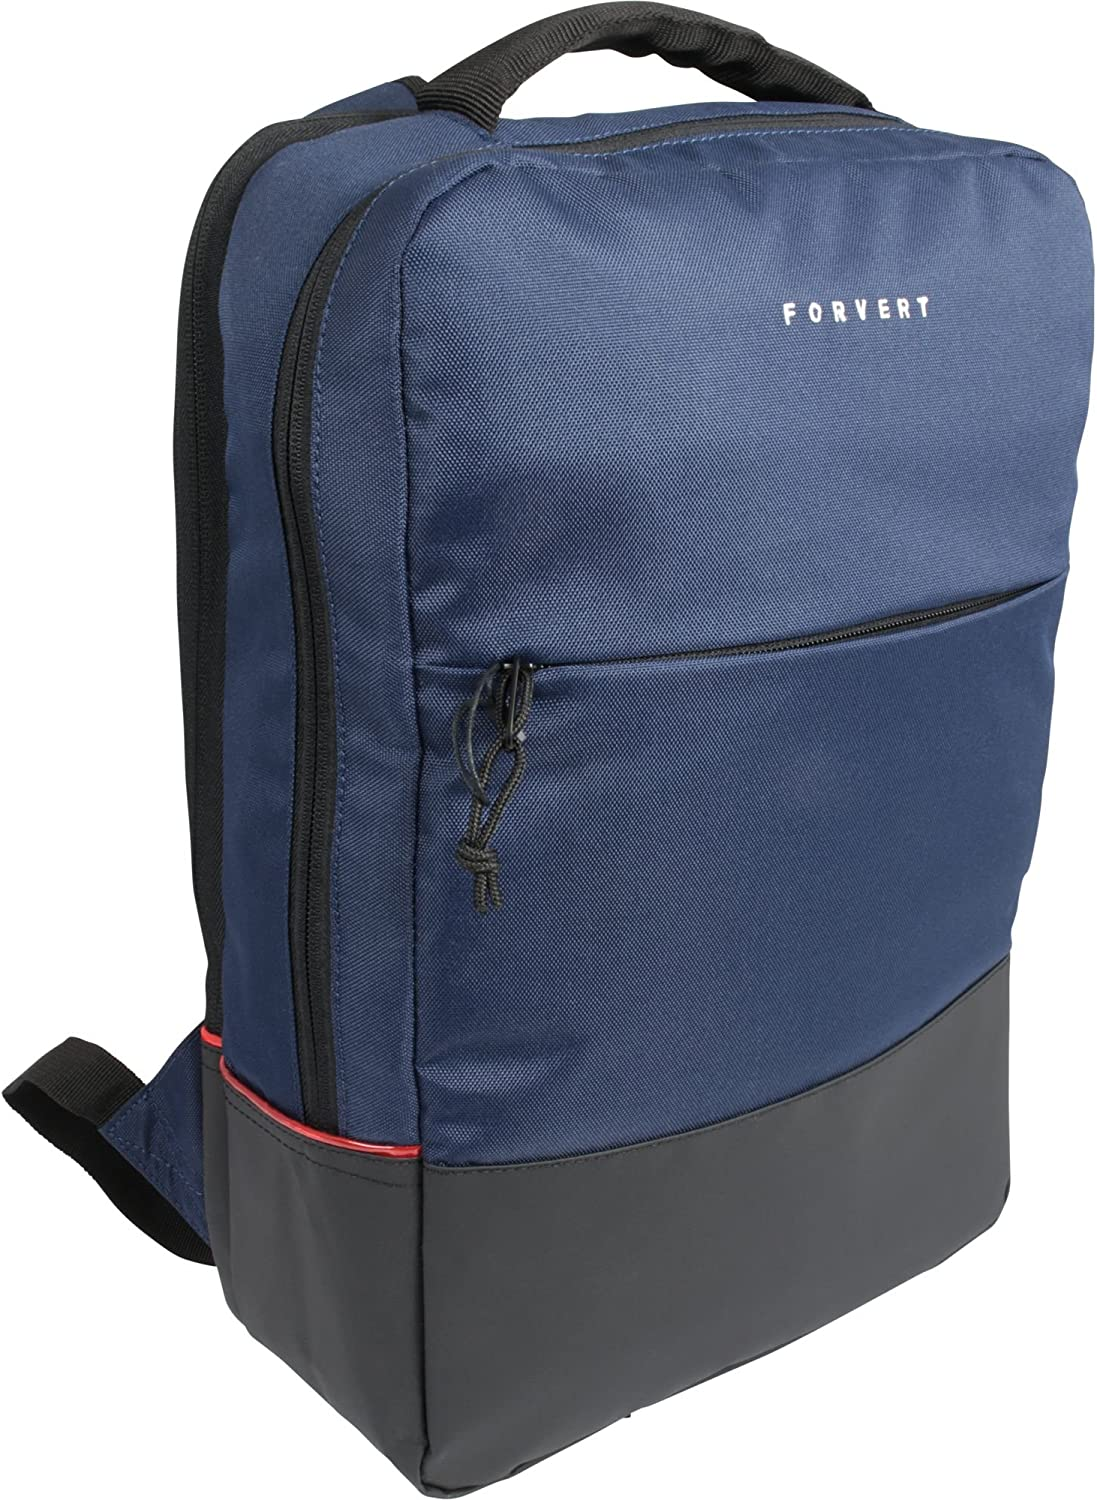 FORGrün New Lance Unisex Backpack markanter Backpack,Rucksack mit 15 Zoll gepolstertes Laptopfach,verstrkter Boden,spannenden Materialmix